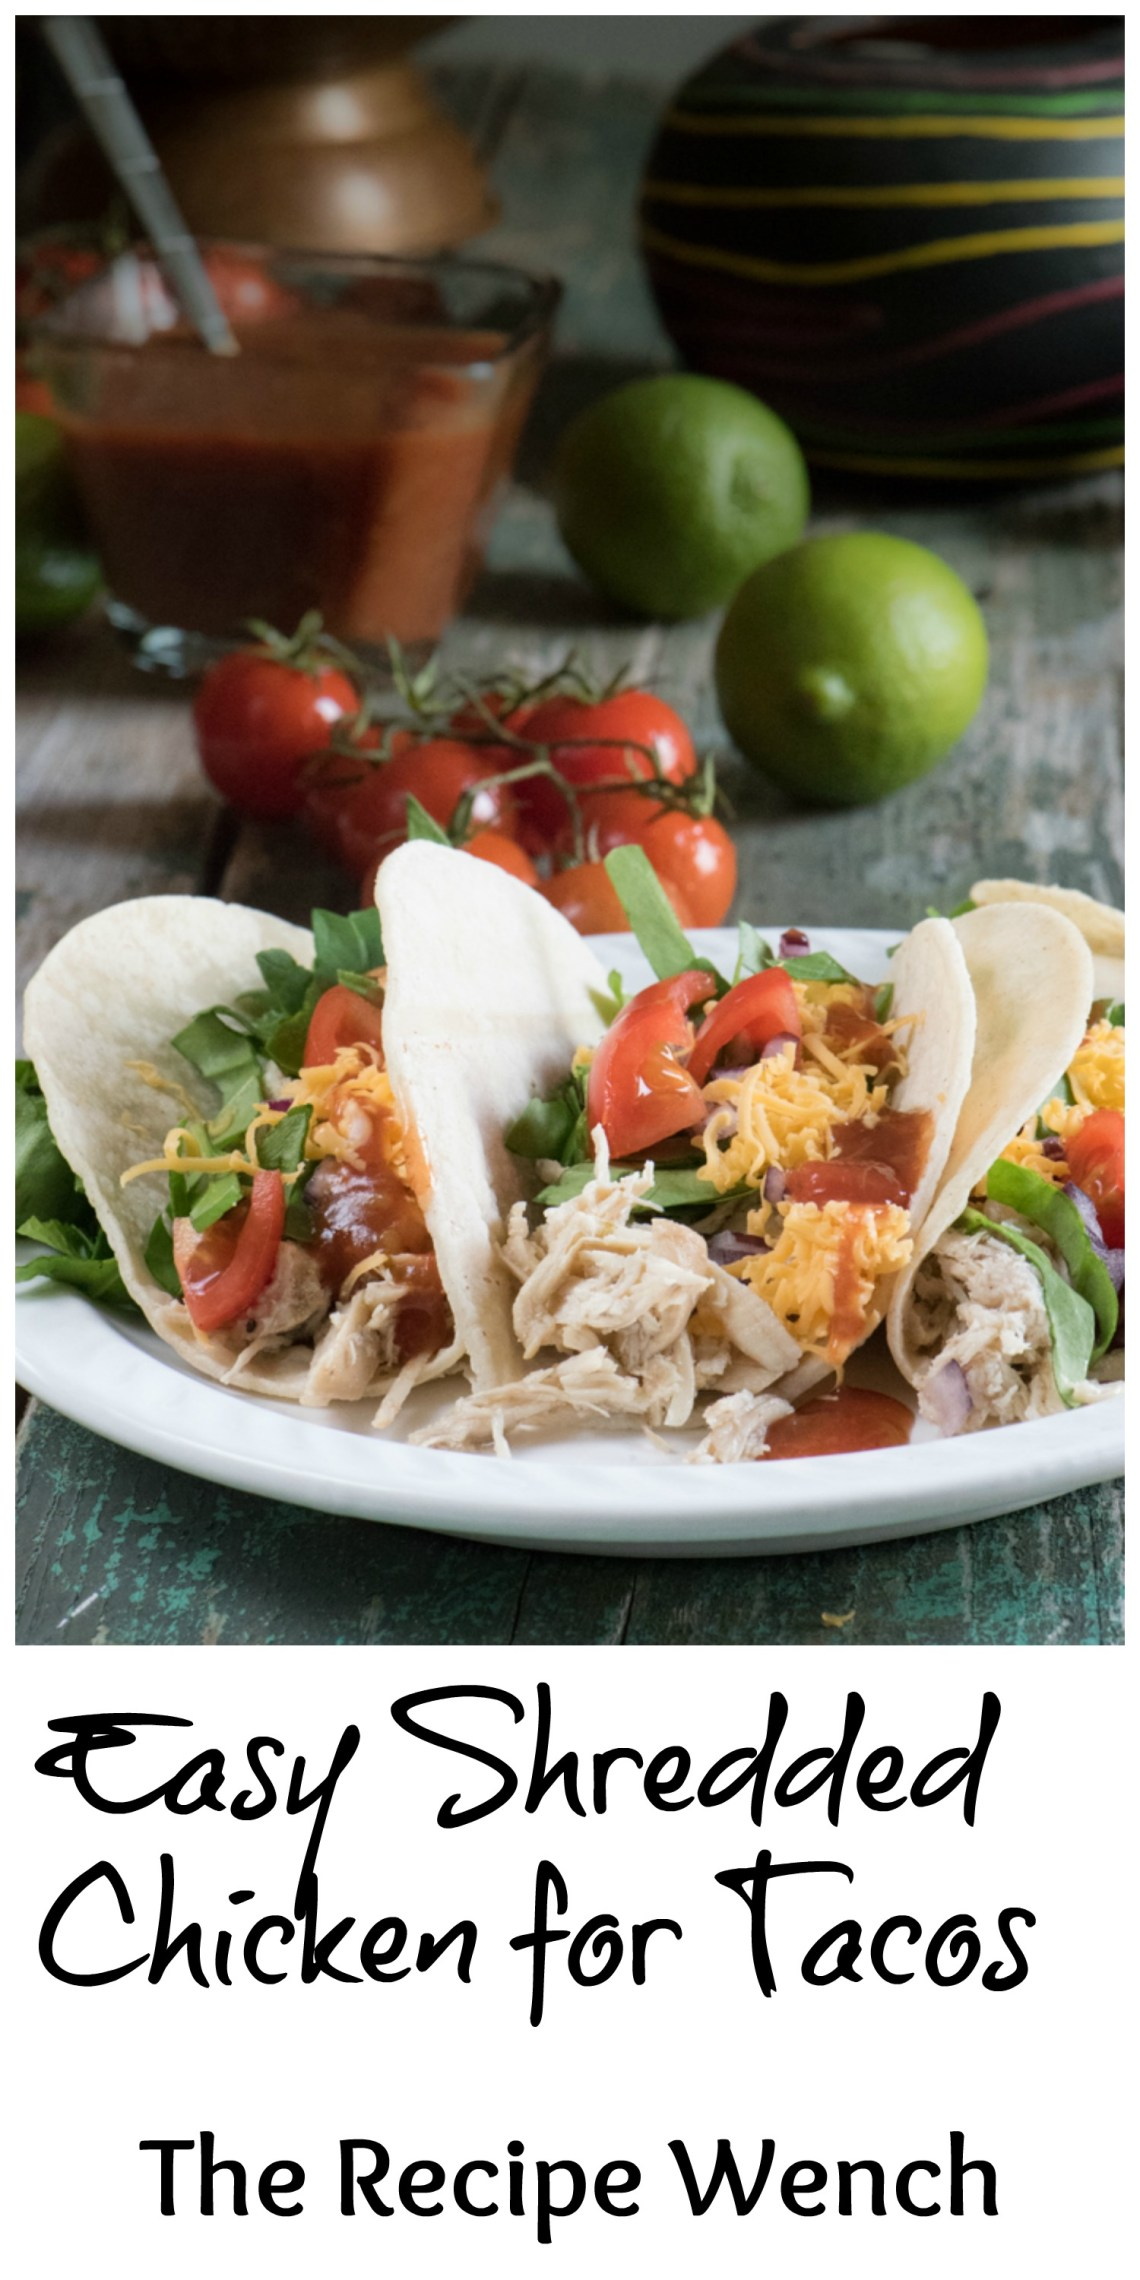 You won't believe this easy shredded chicken recipe. Make extra and store for those hectic last-minute dinners. I do! | The Recipe Wench